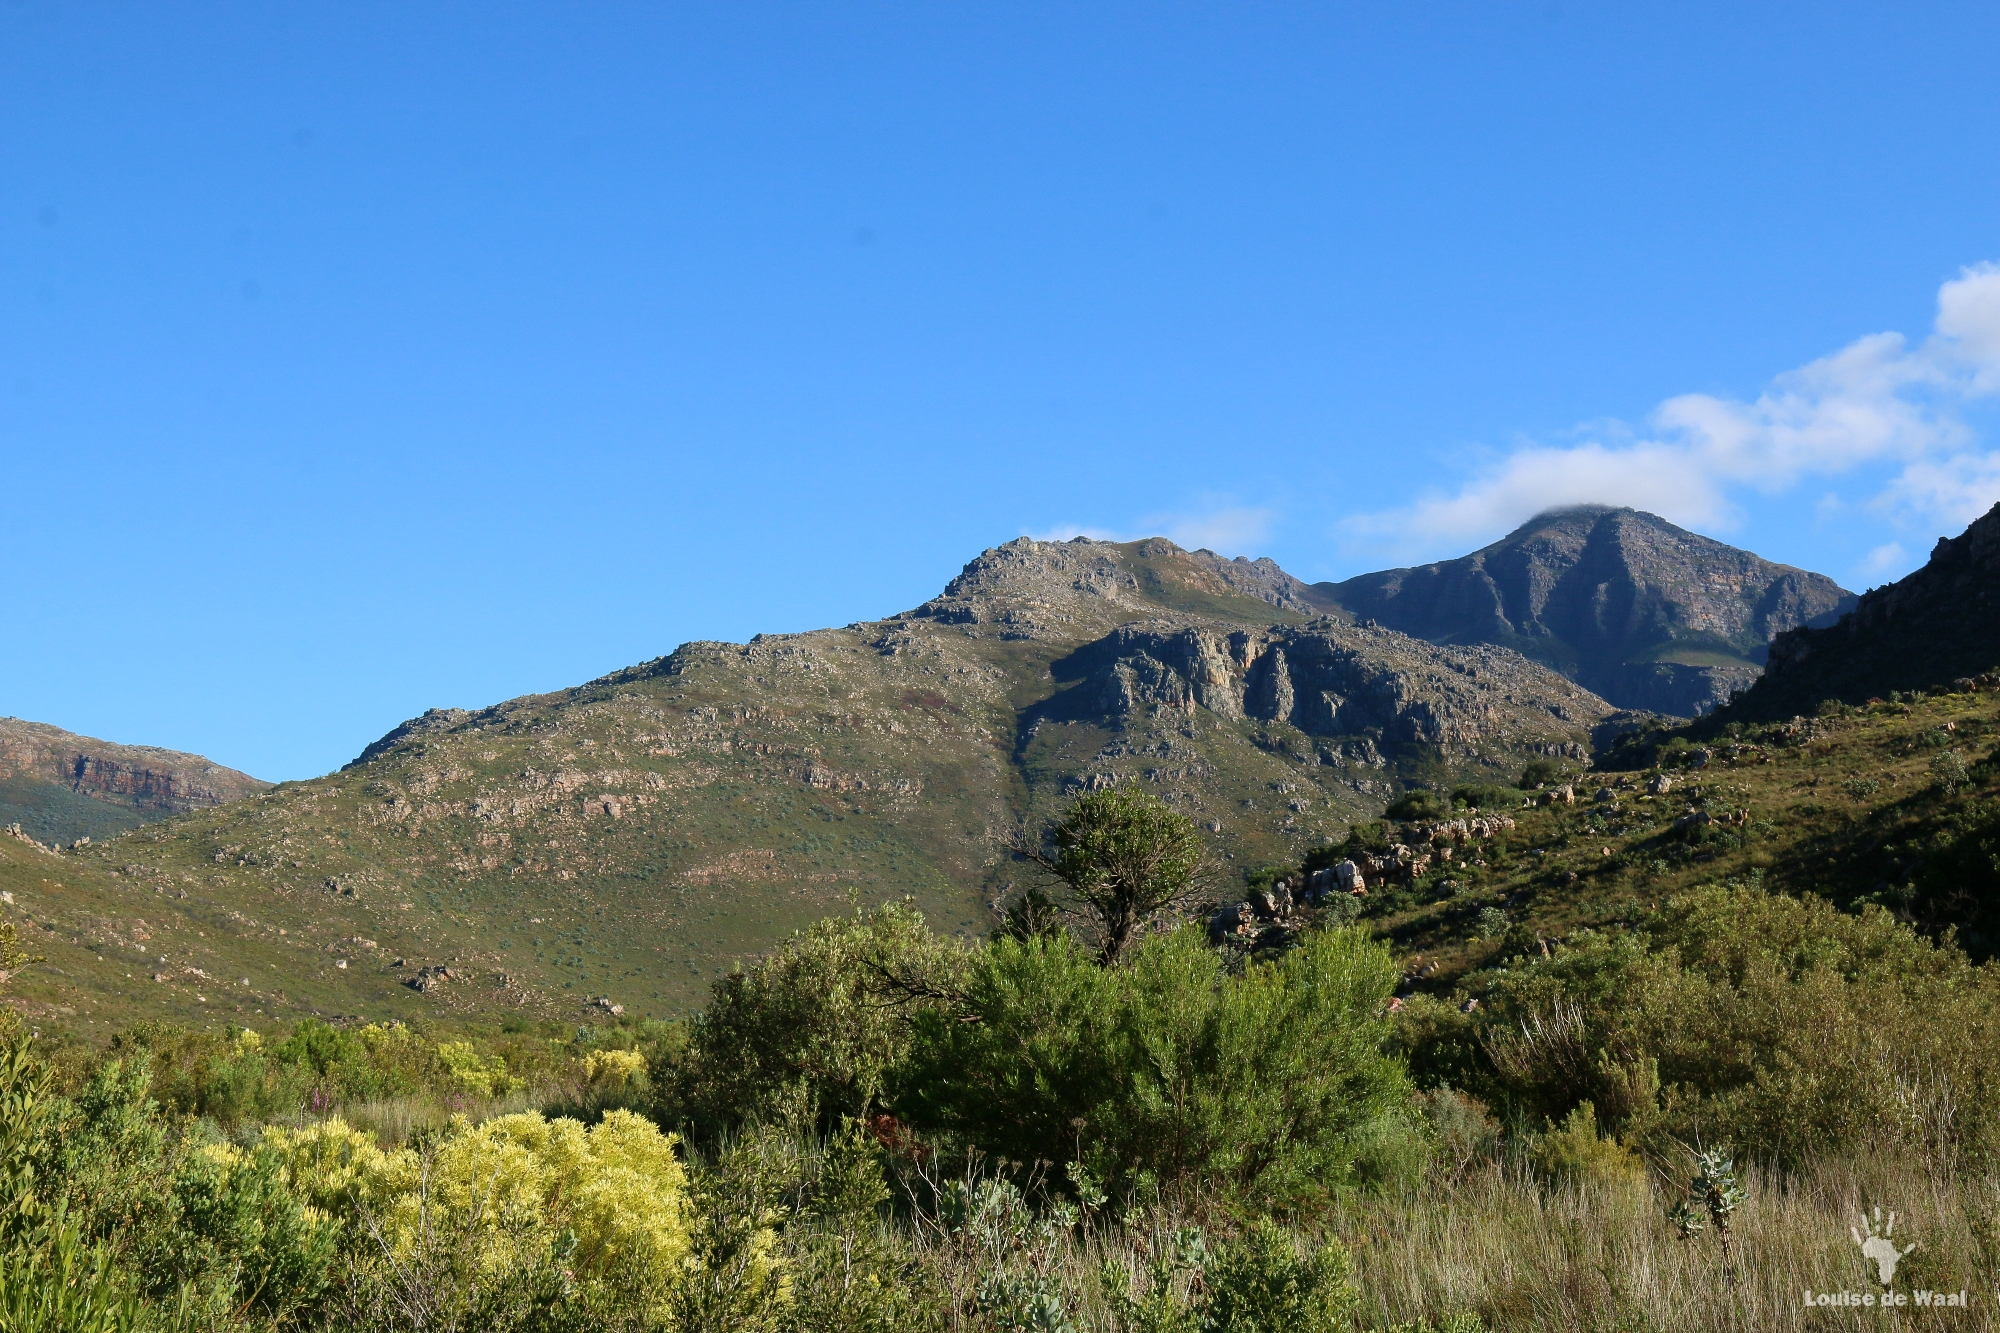 View across Bastiaanskloof Reserve, Wellington.